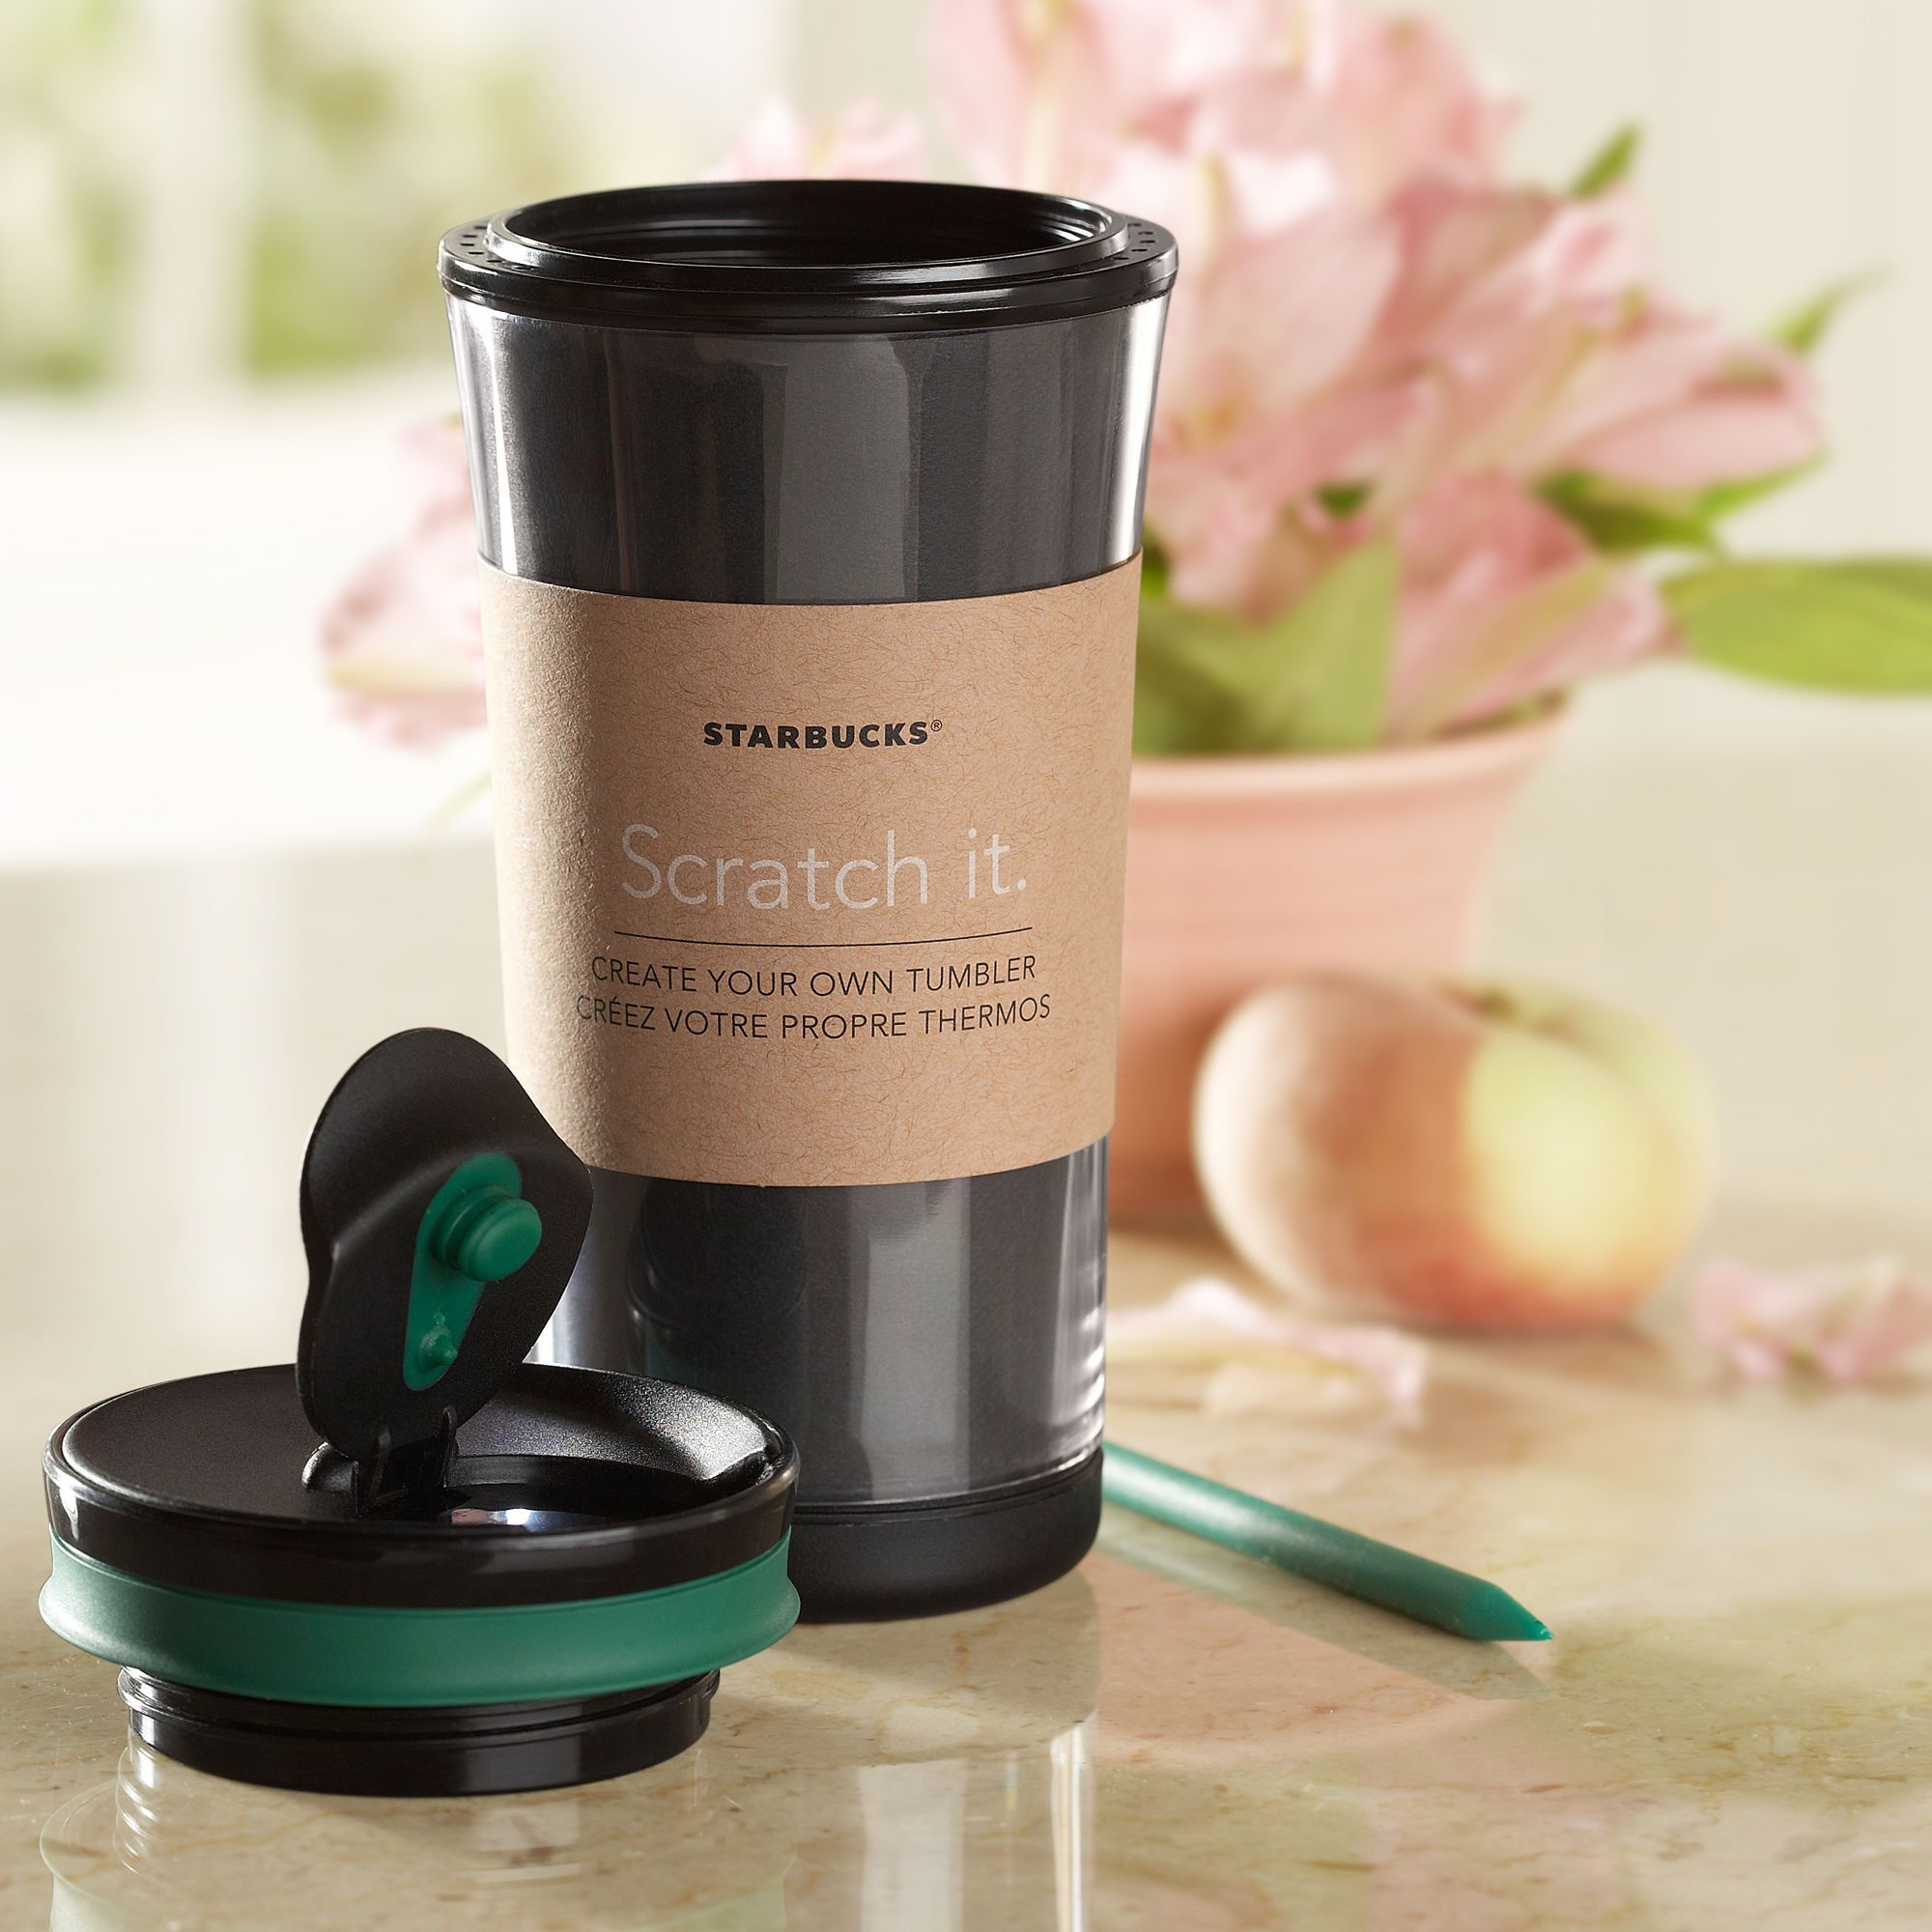 Create your own scratch tumbler 8 fl oz a customizable tumbler create your own scratch tumbler 8 fl oz a customizable tumbler with scratch starbucks pronofoot35fo Choice Image